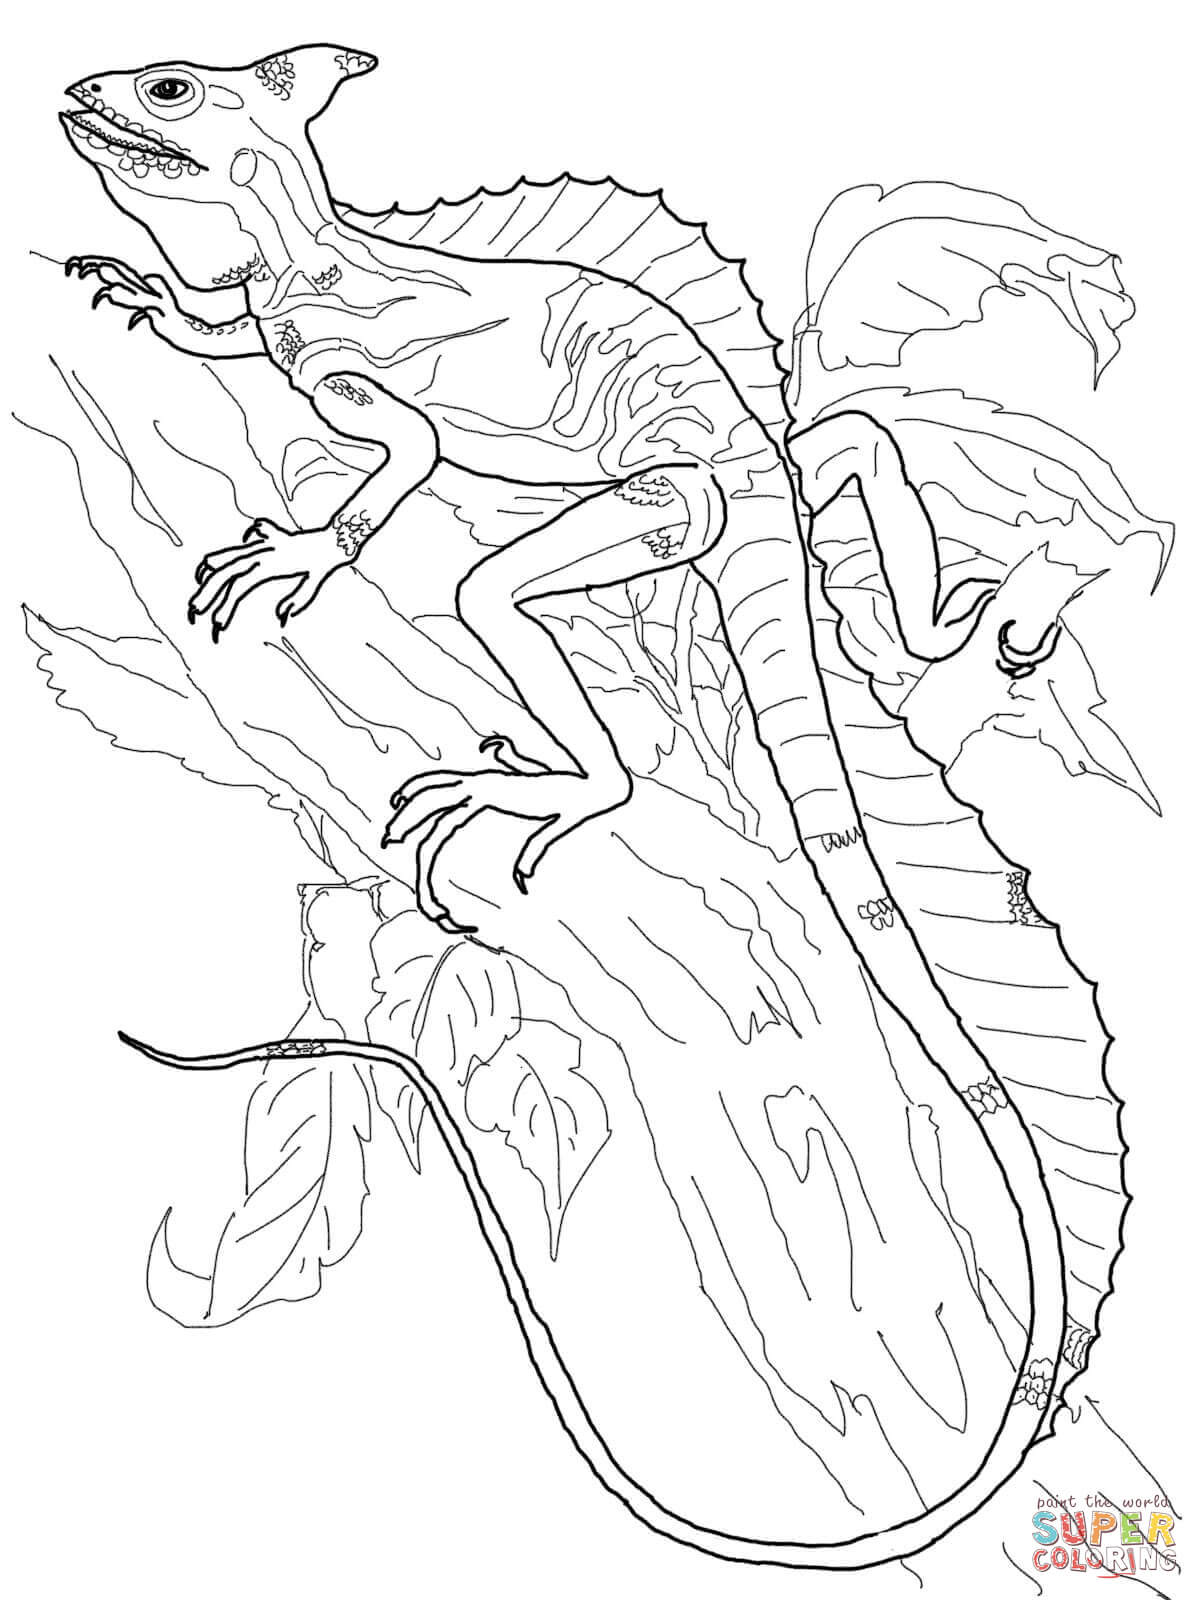 Lizard Coloring Sheet : lizard, coloring, sheet, Basilisk, Lizard, Coloring, Printable, Pages